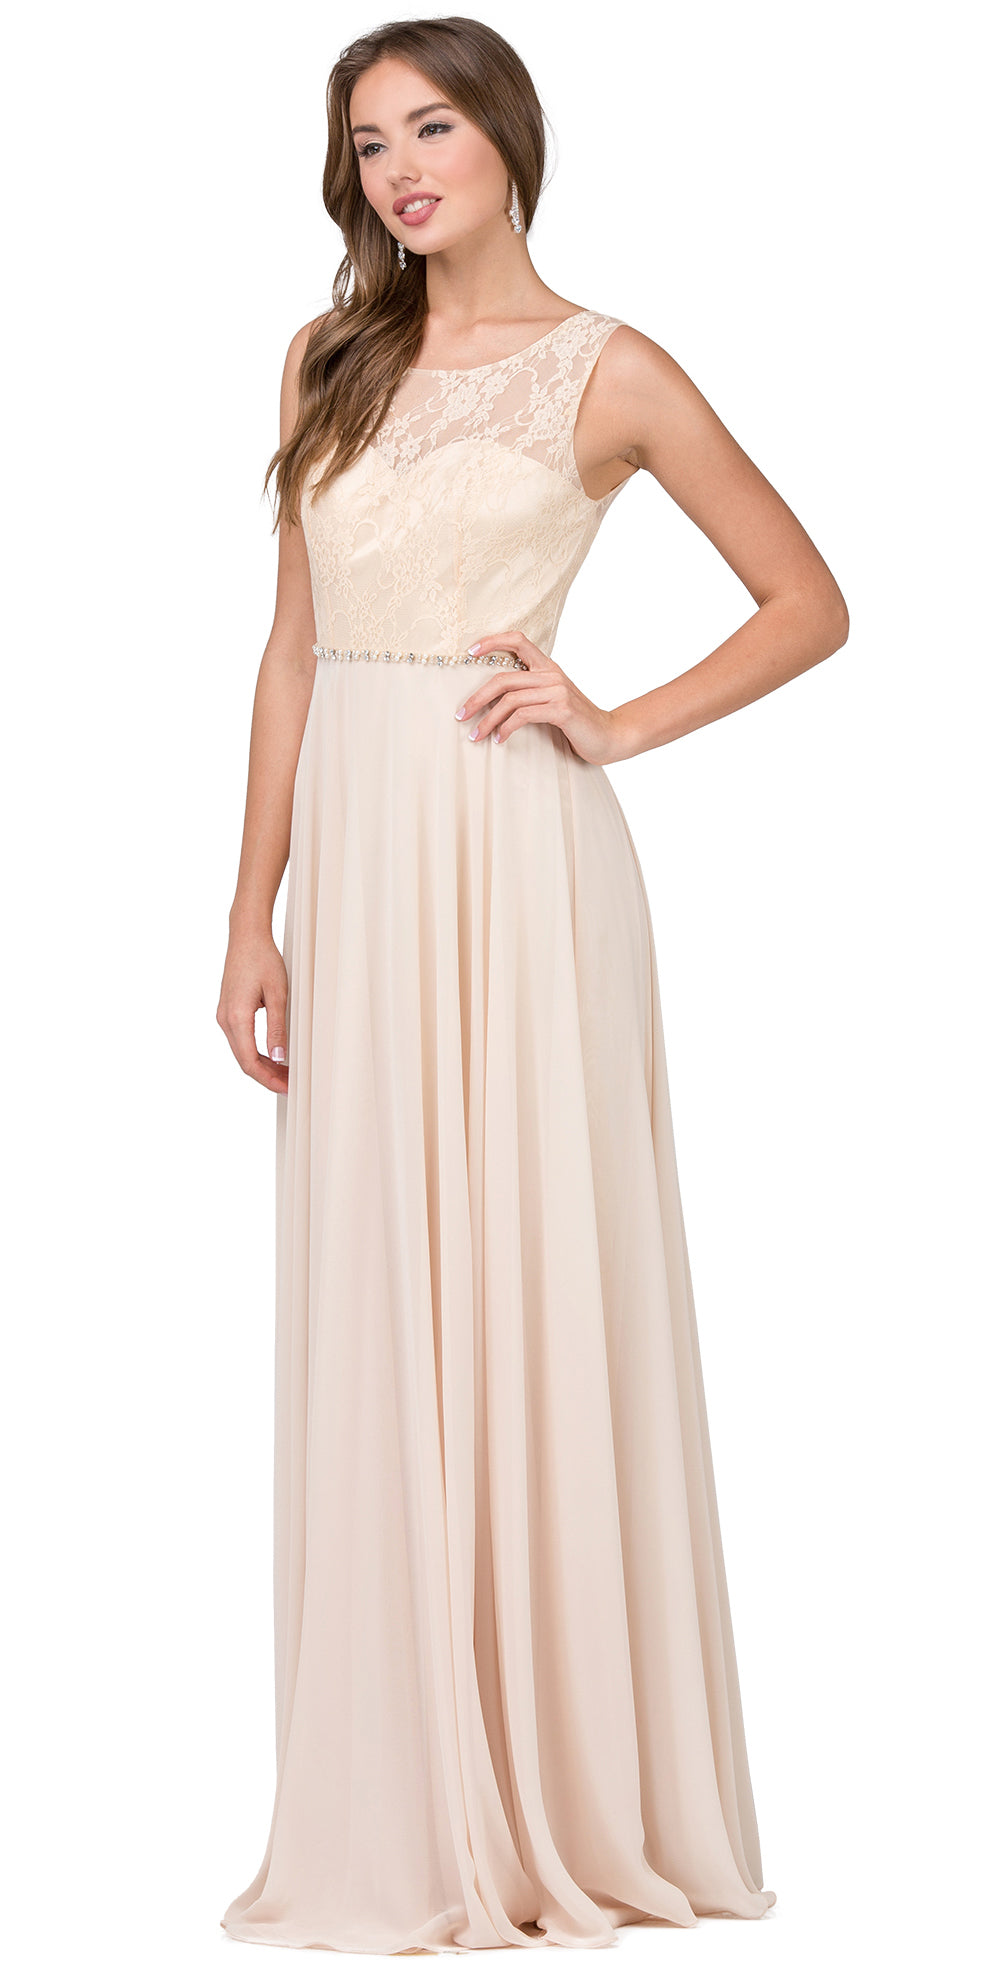 Image of Lace Bodice Beaded Waist Long Chiffon Bridesmaid Dress in Champaign